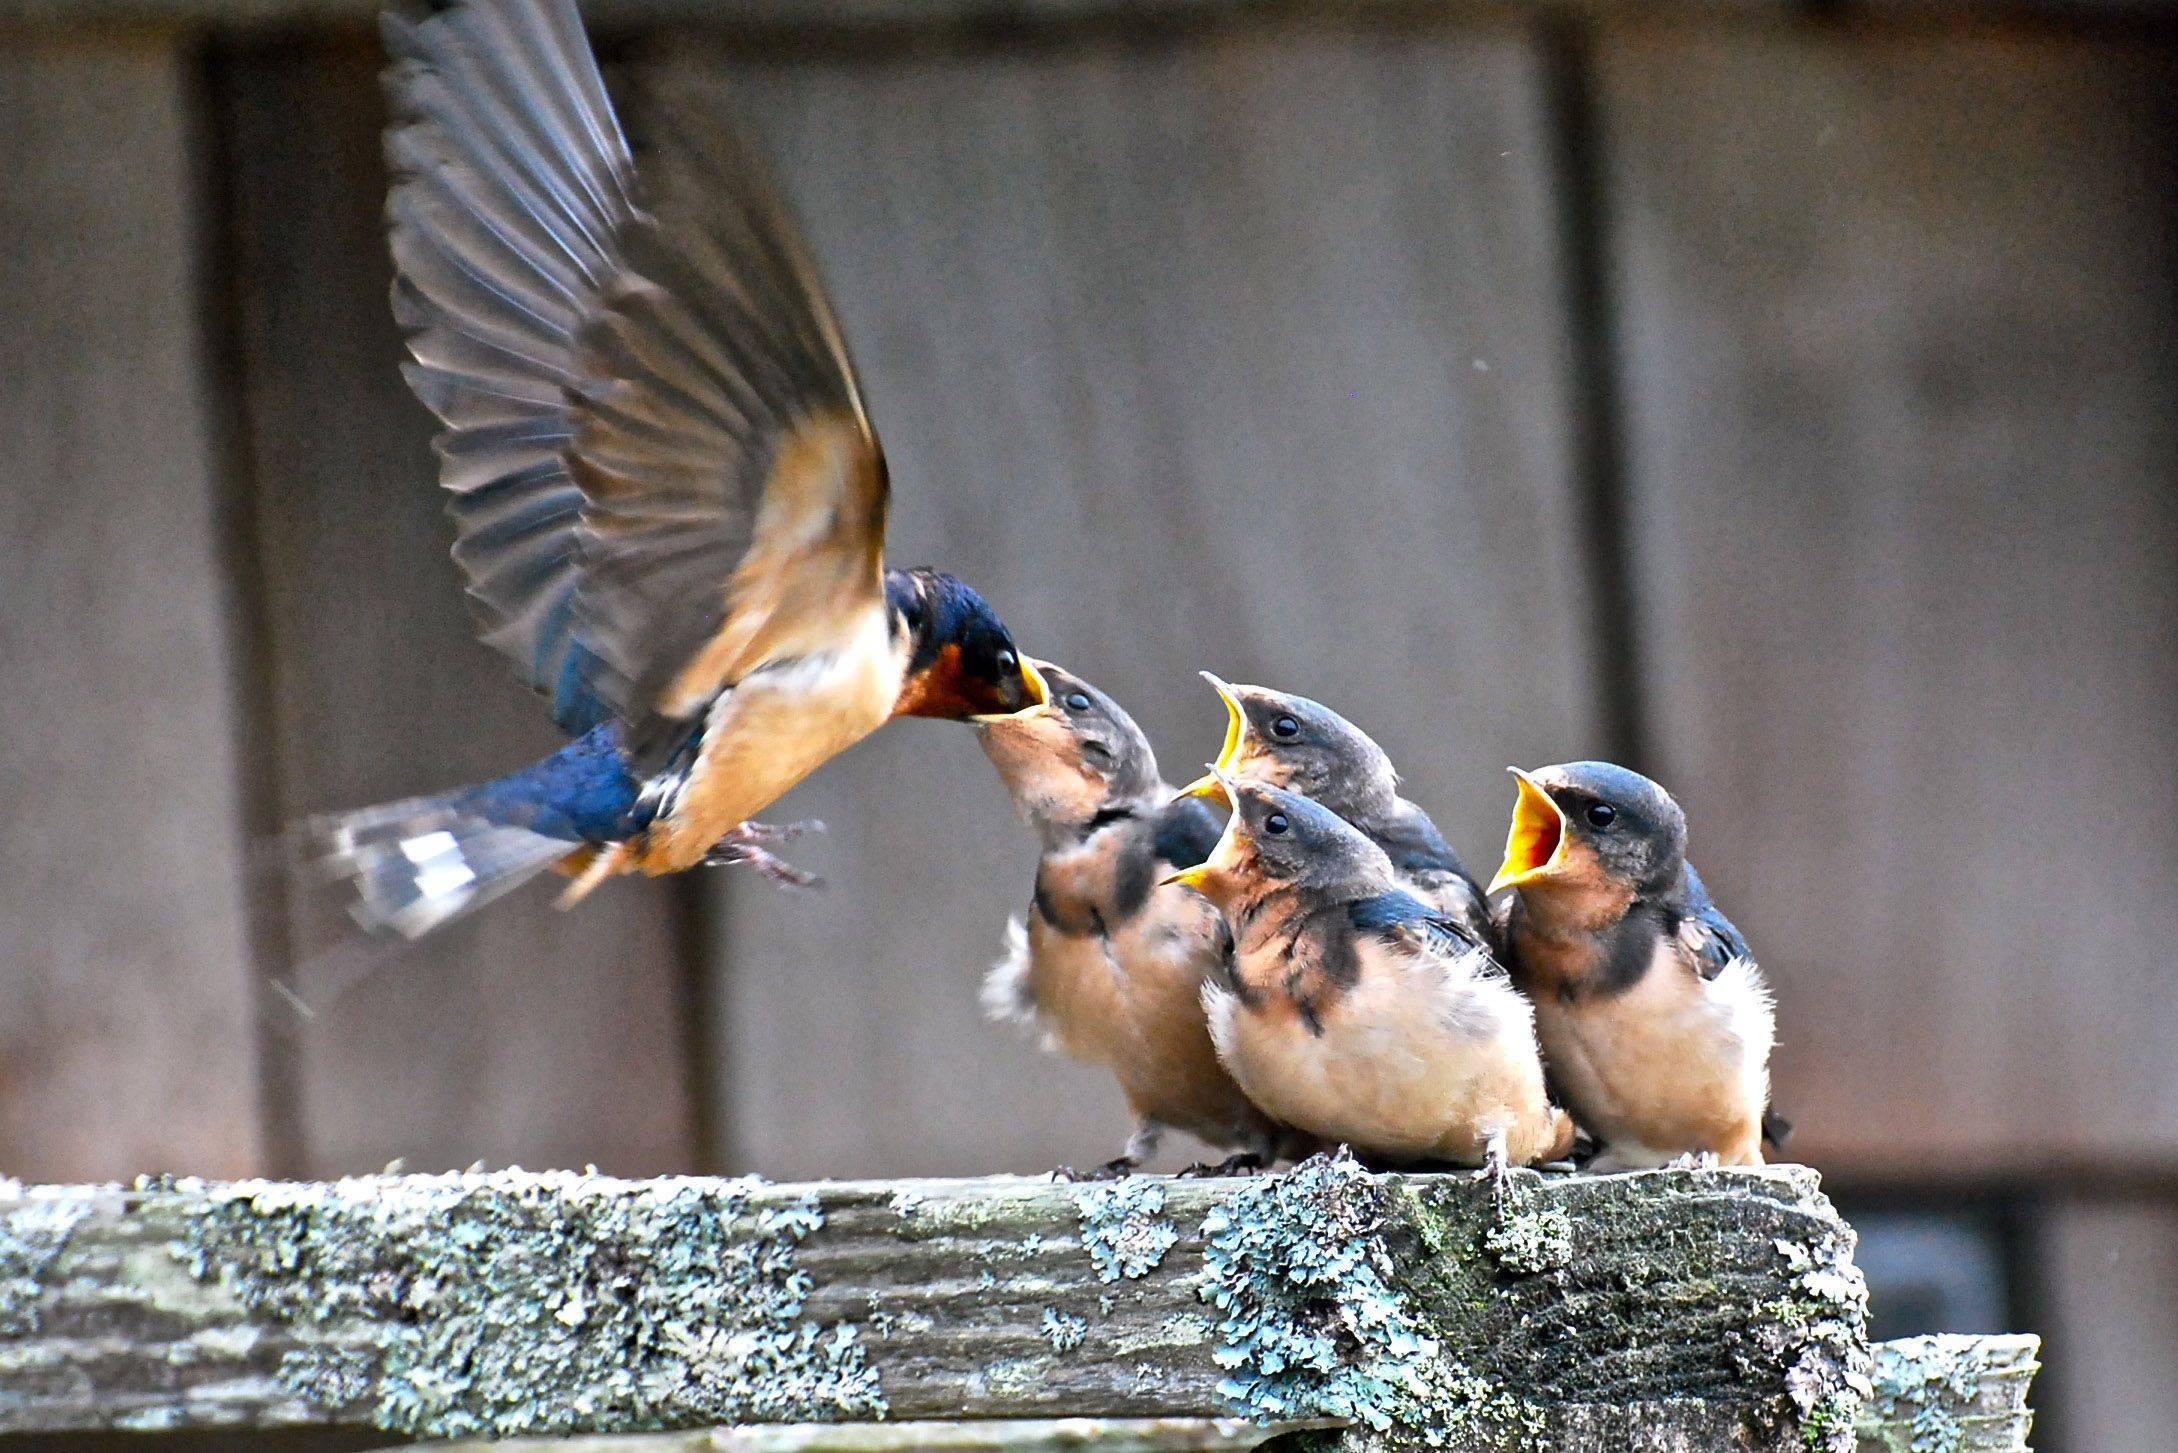 This picture was taken outside our lodge on the Washington coast this past September. These young barn swallows could fly, but were fed by mom and dad while they stayed in flight.